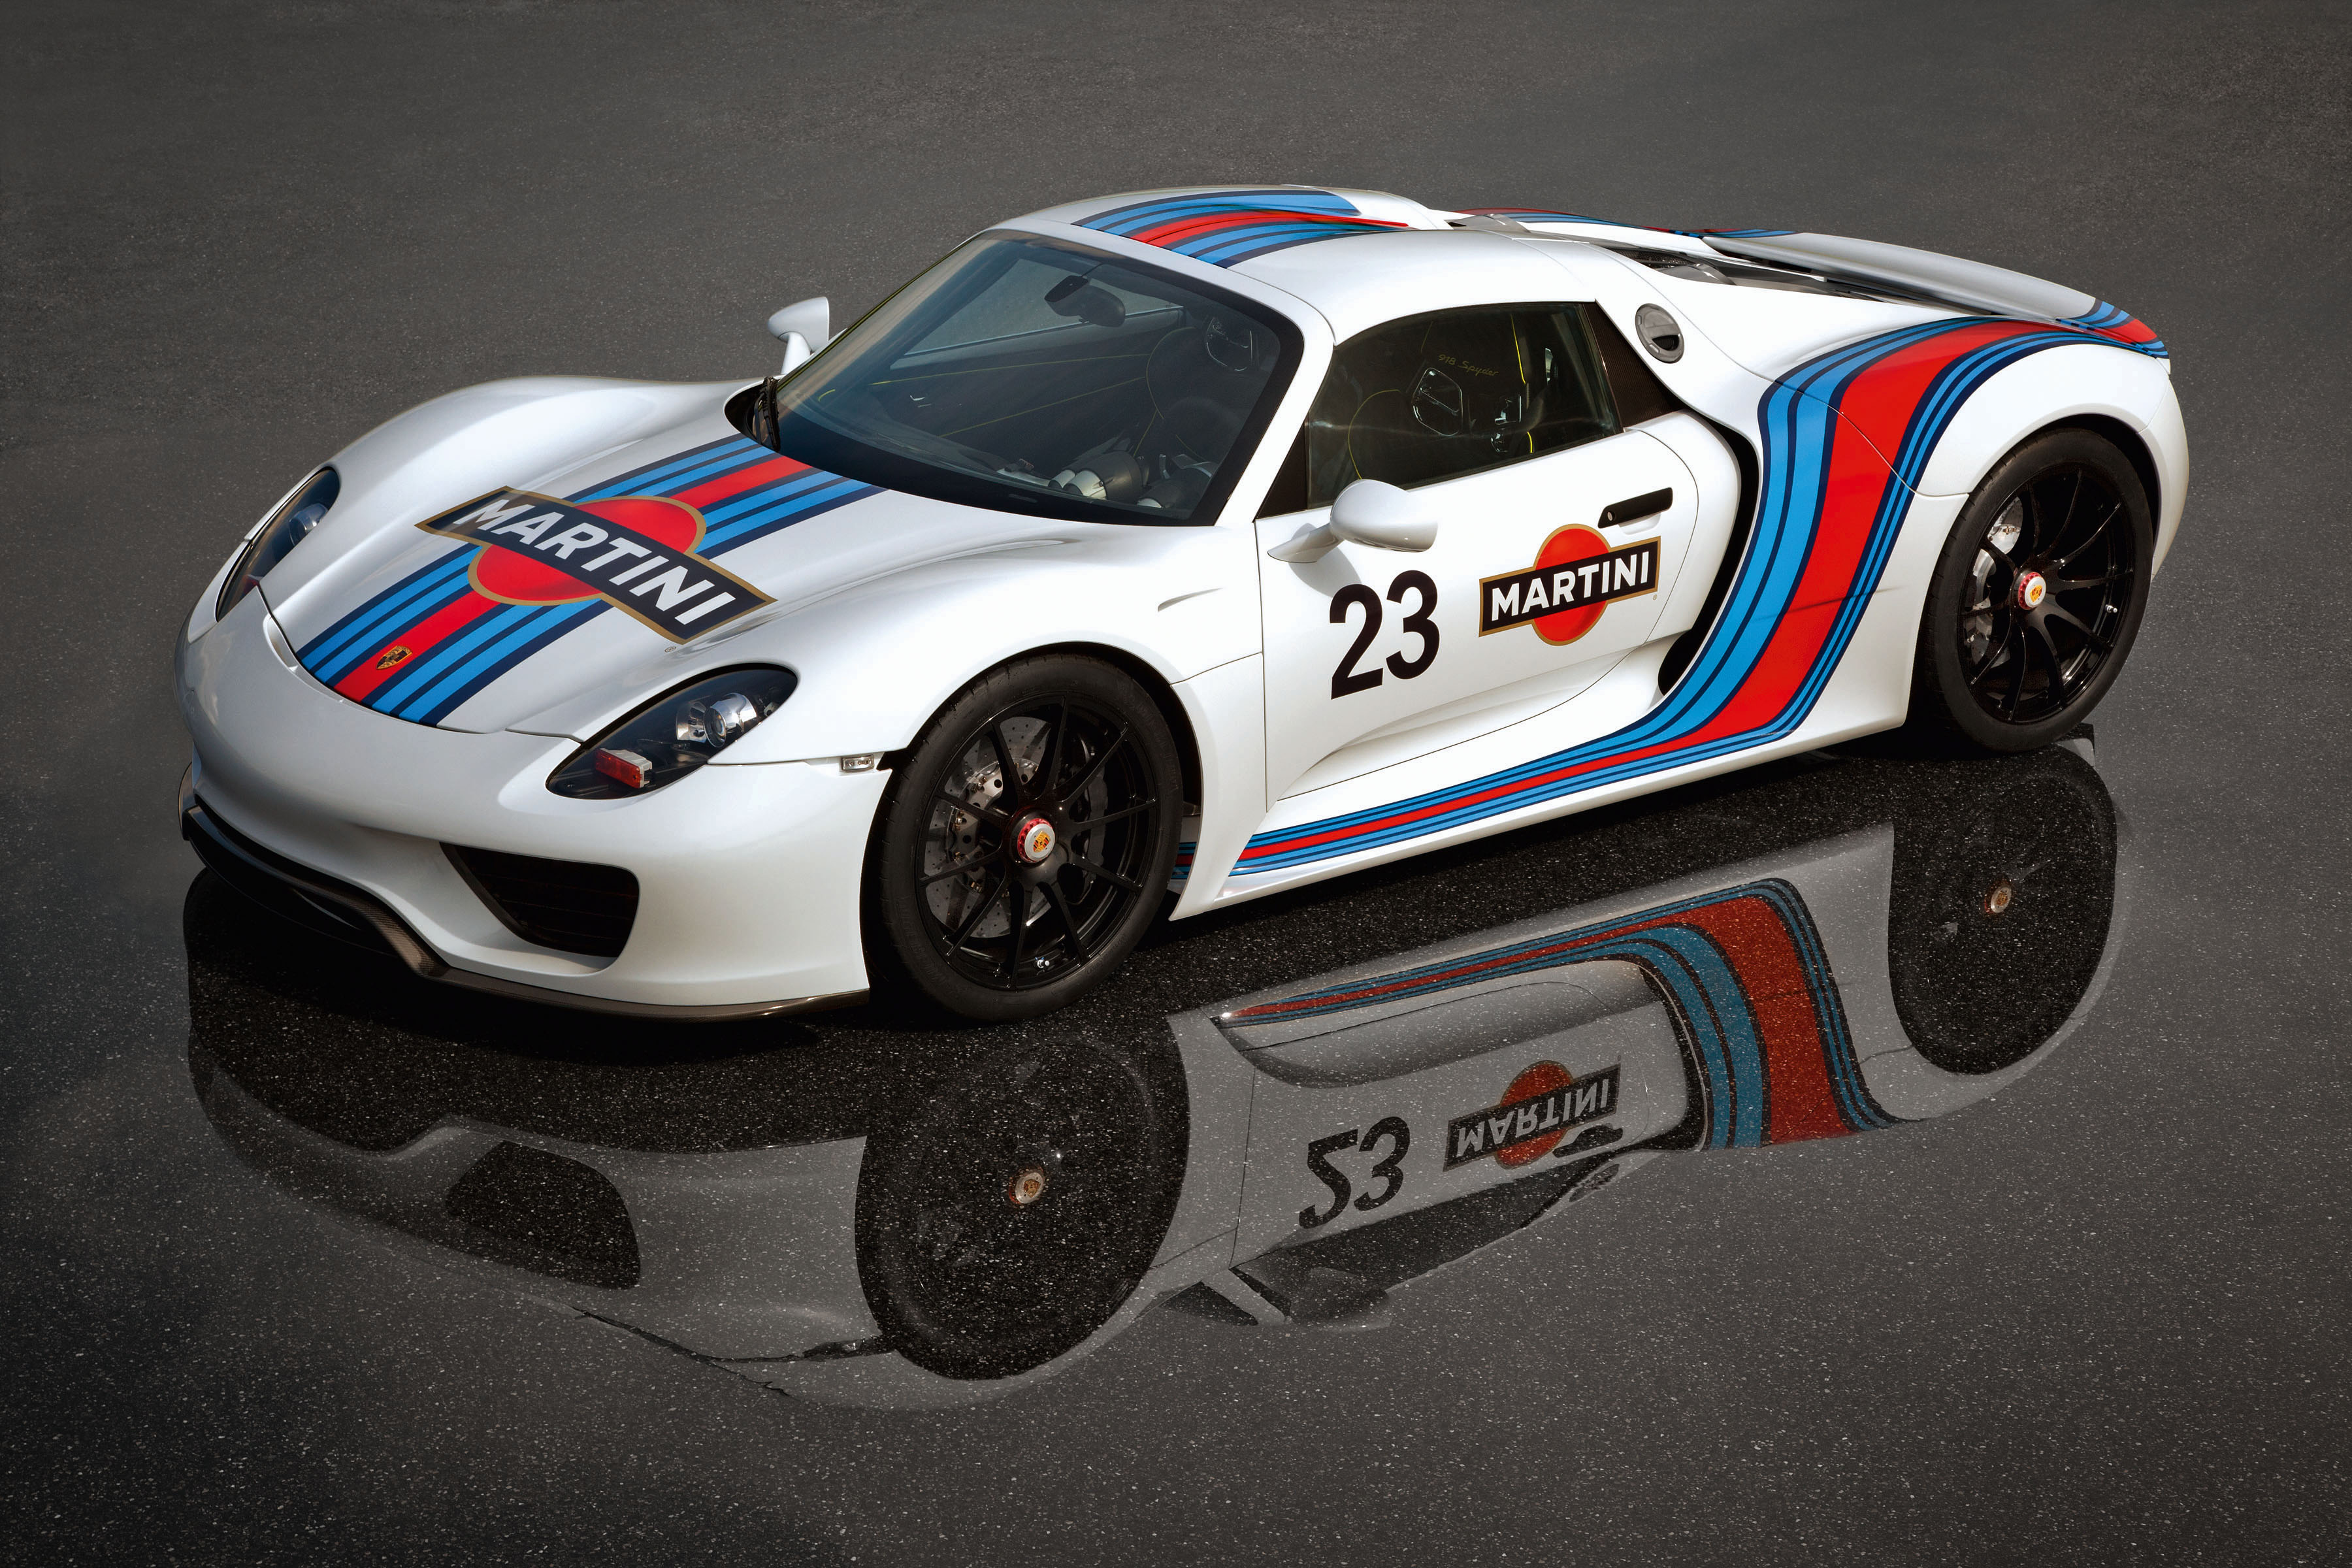 918 Martini front angle 2